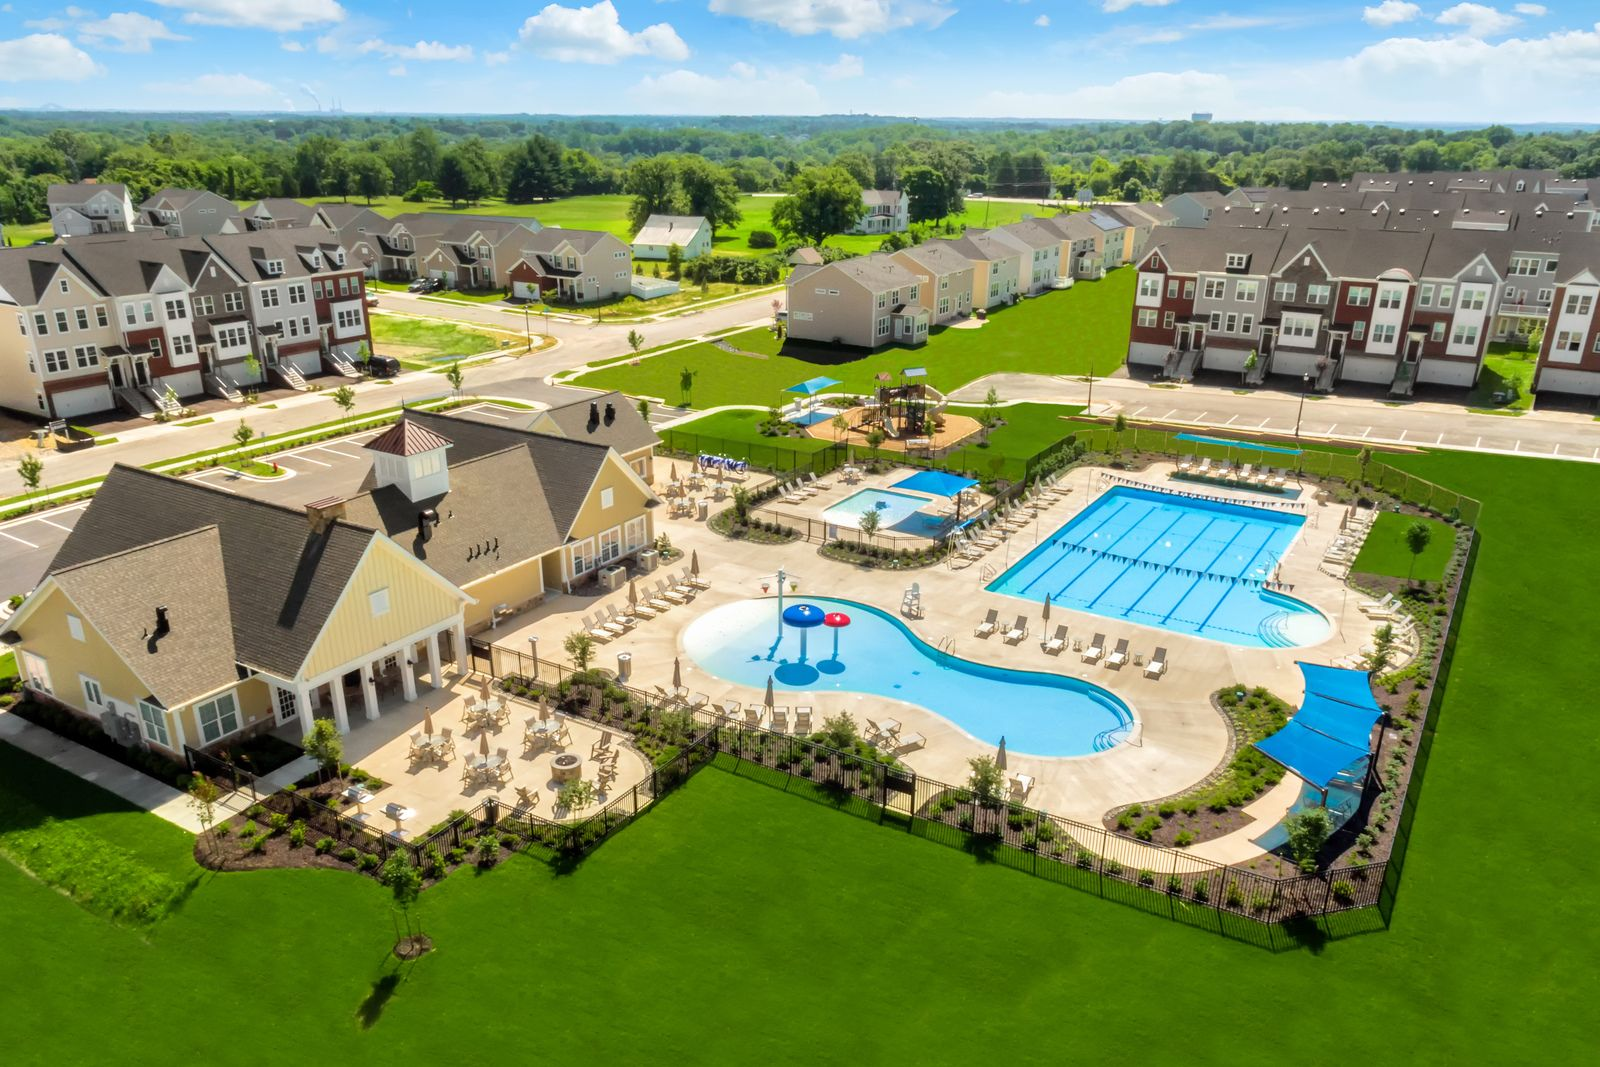 live everyday like you're on vacation:Welcome home - a beautiful new community with incredible amenities! Come explore life at Shipley Homestead!Click HERE to schedule your visit!